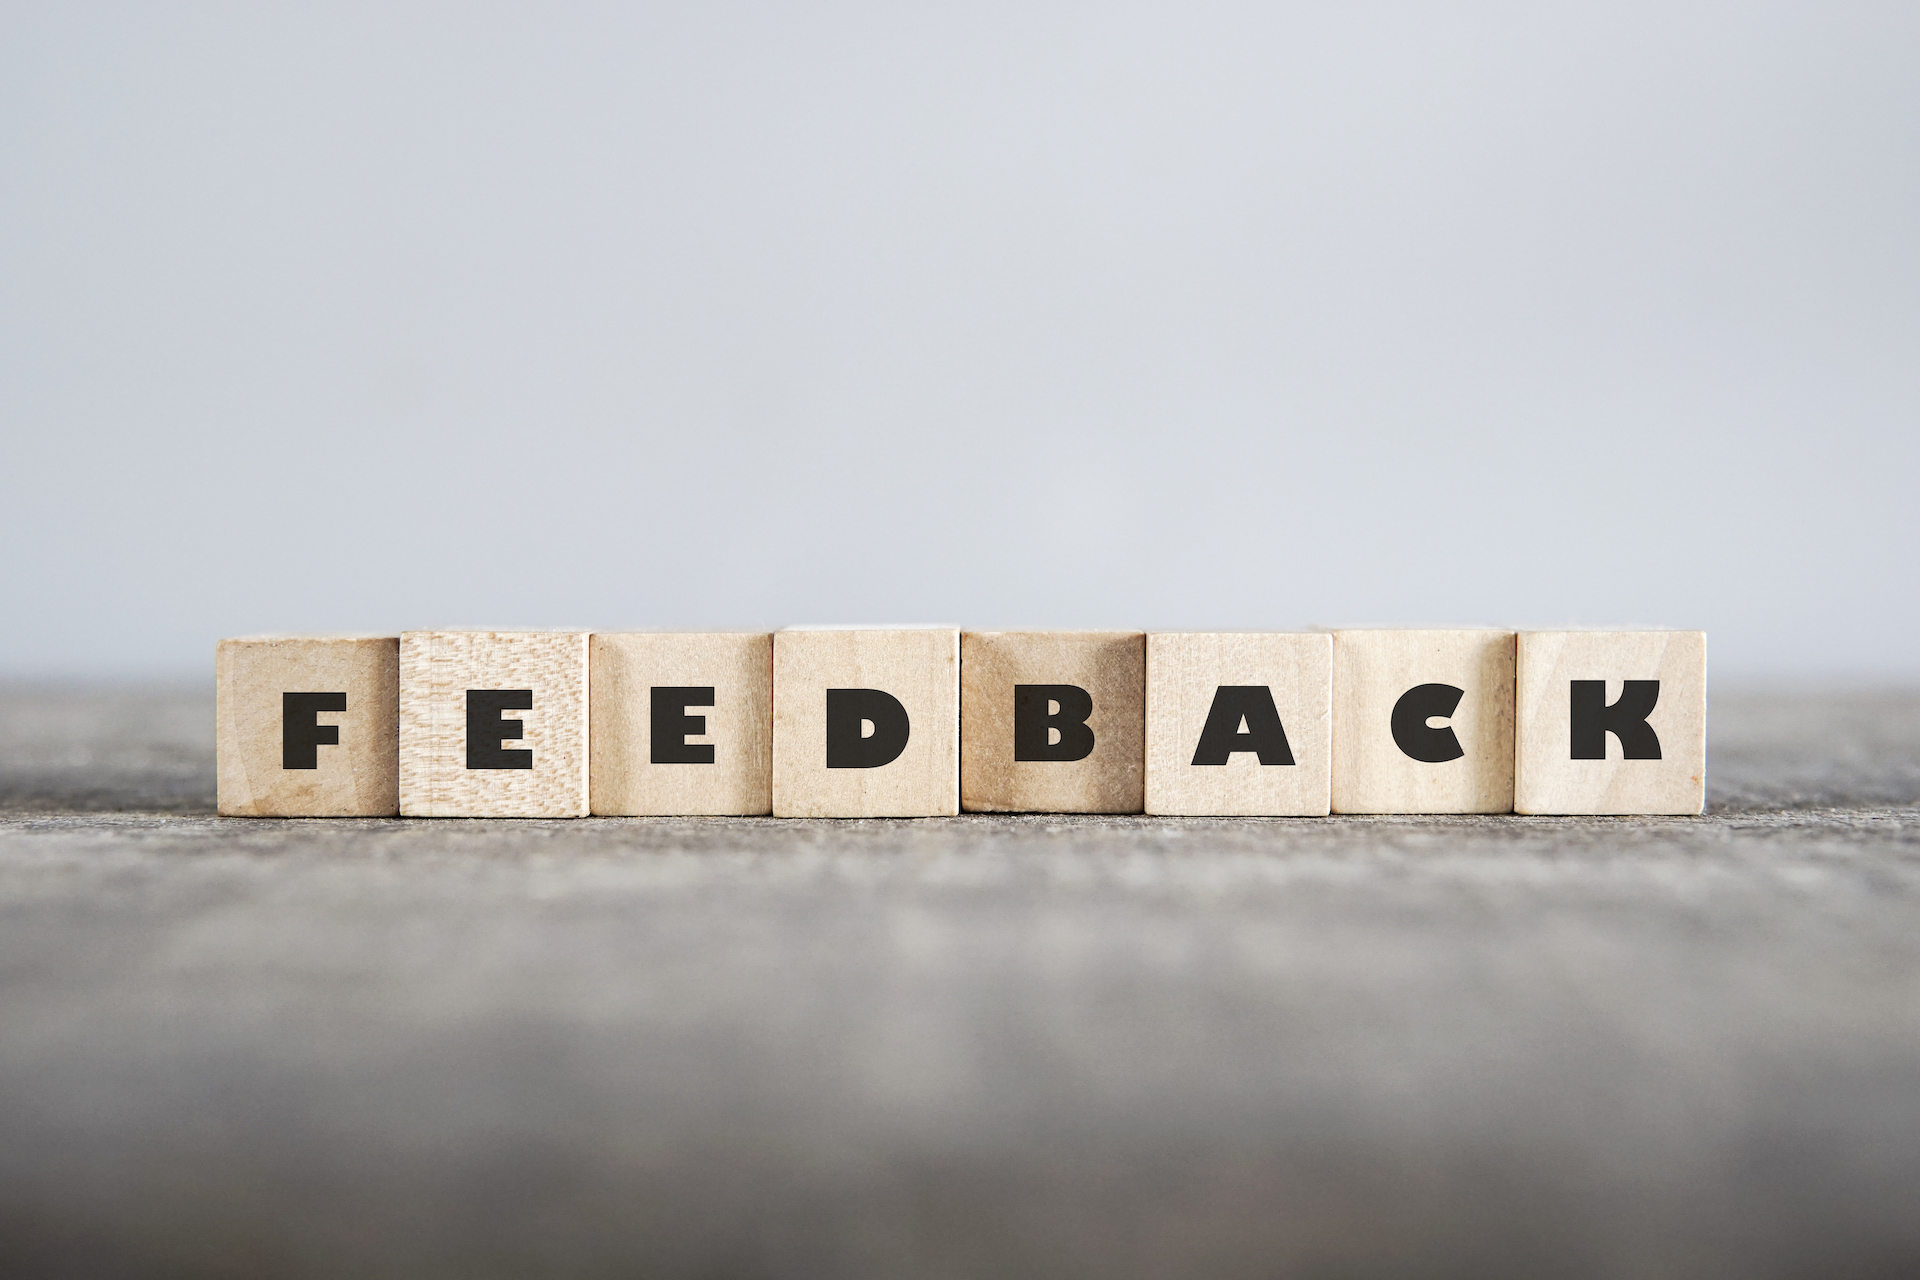 Executive Leadership Podcast #75: If You Don't Like Feedback, You'll Like a Disengaged Team Even Less